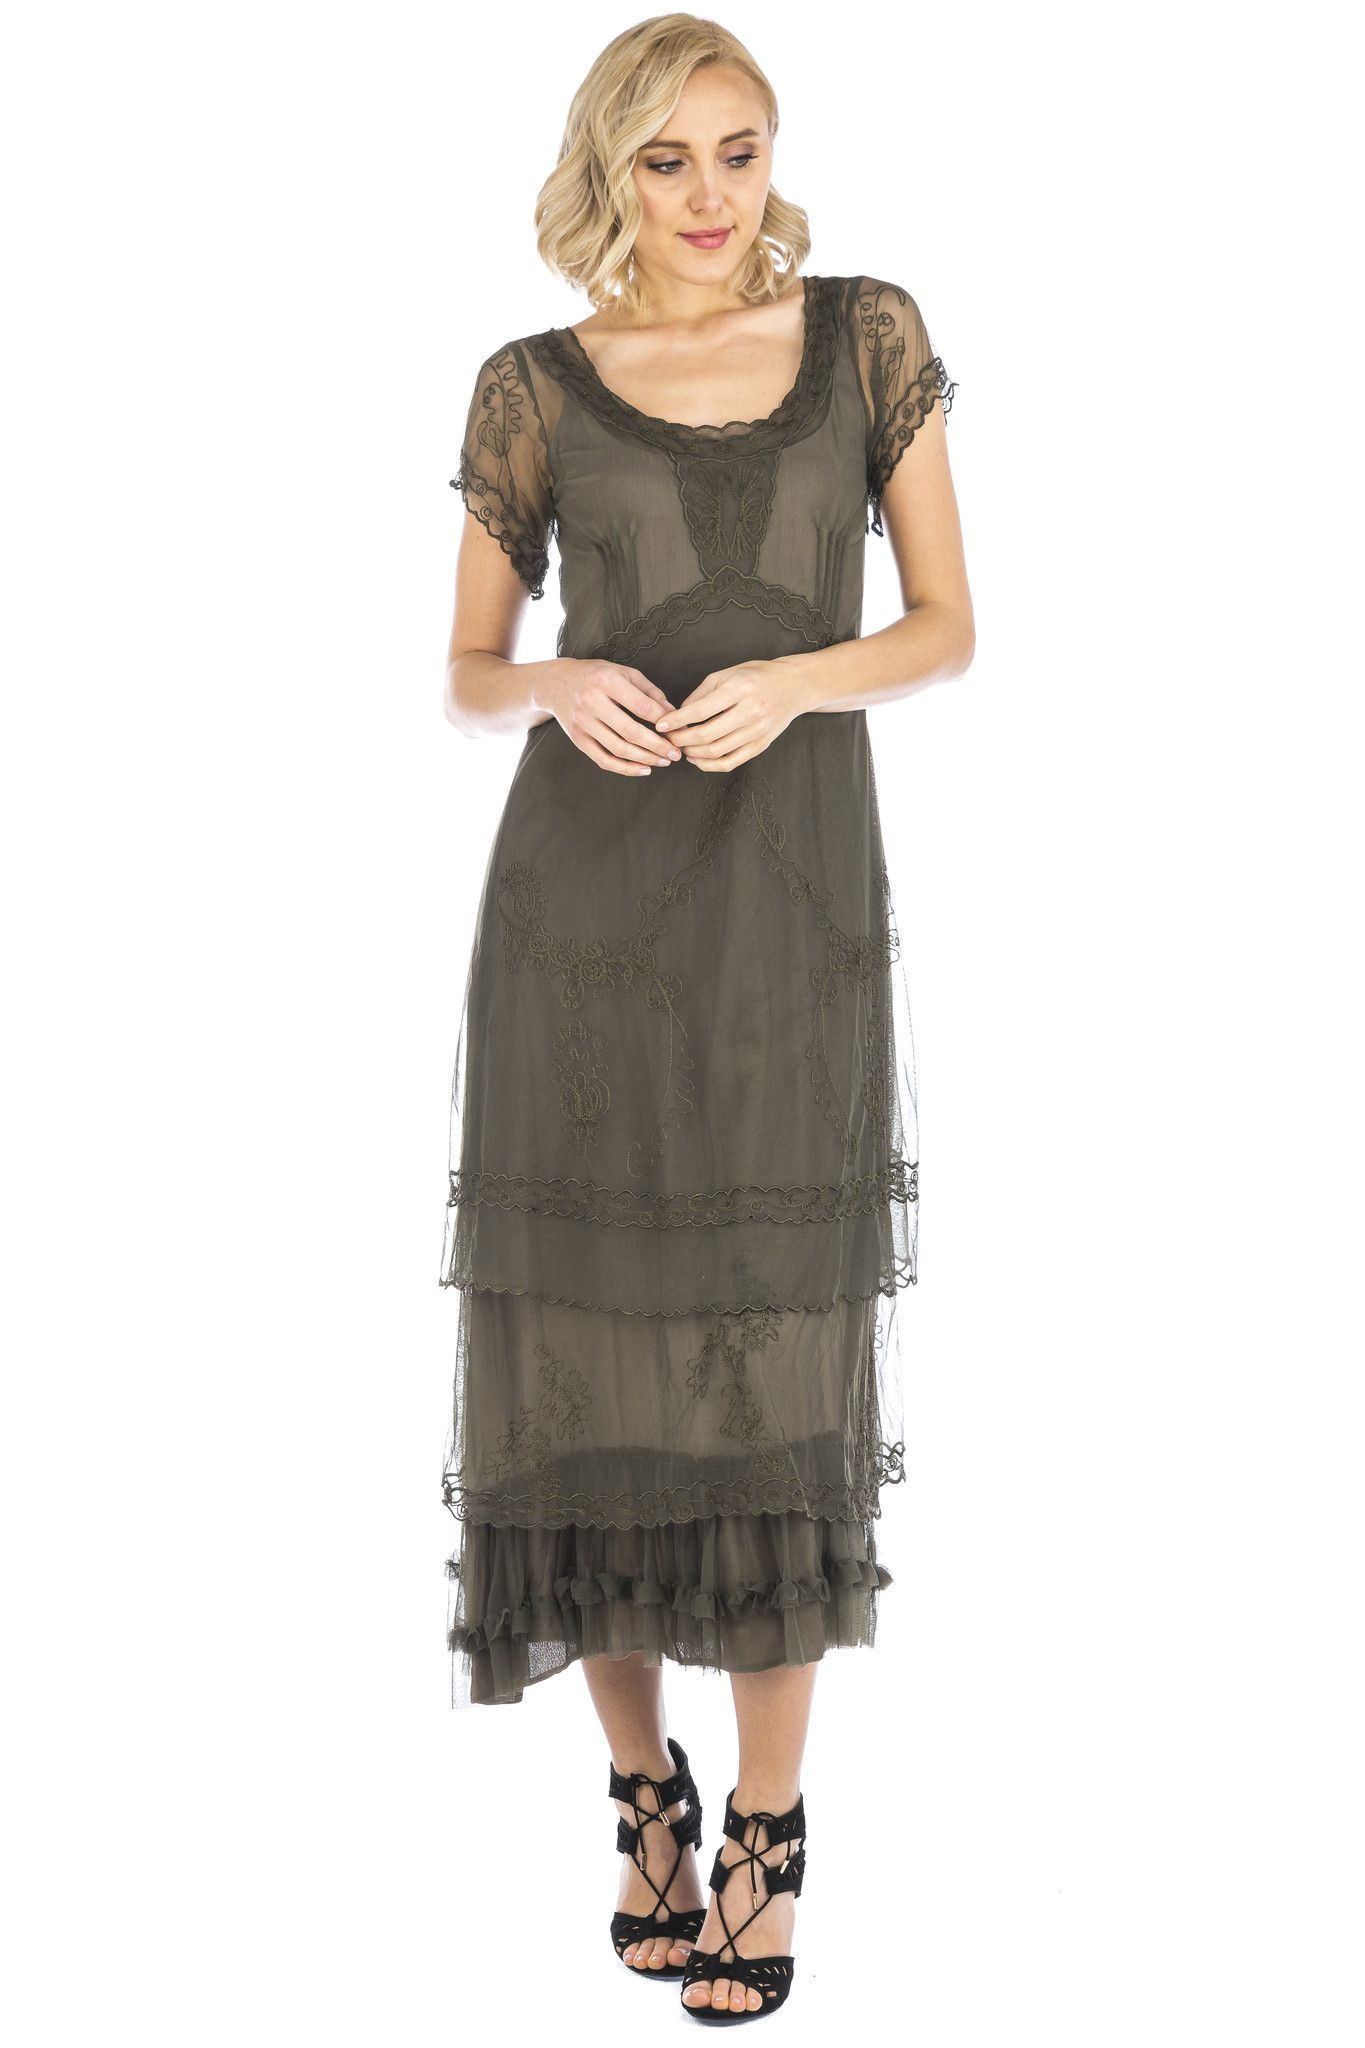 Dresses to wear to a fall wedding for a guest  Trueromantic Arianna Says Olive Dress  Olive dress Wedding guest